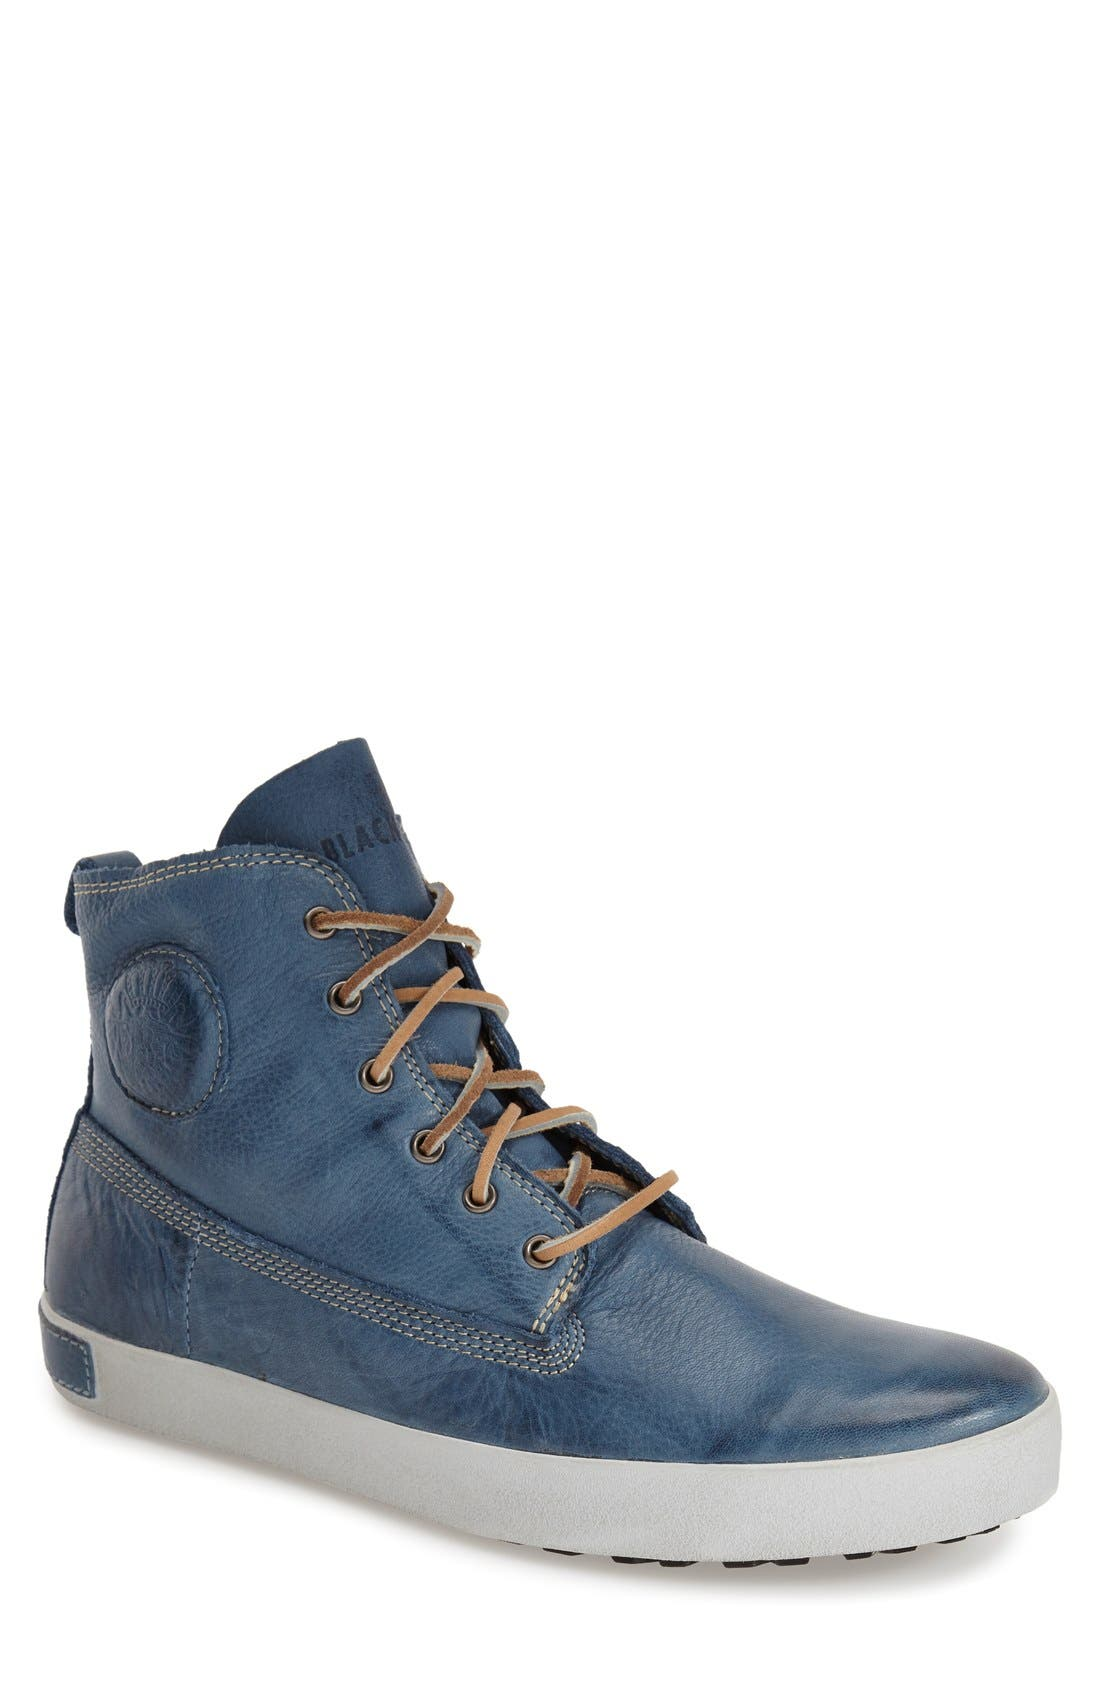 'JM04' Sneaker,                             Main thumbnail 1, color,                             Light Indigo Leather